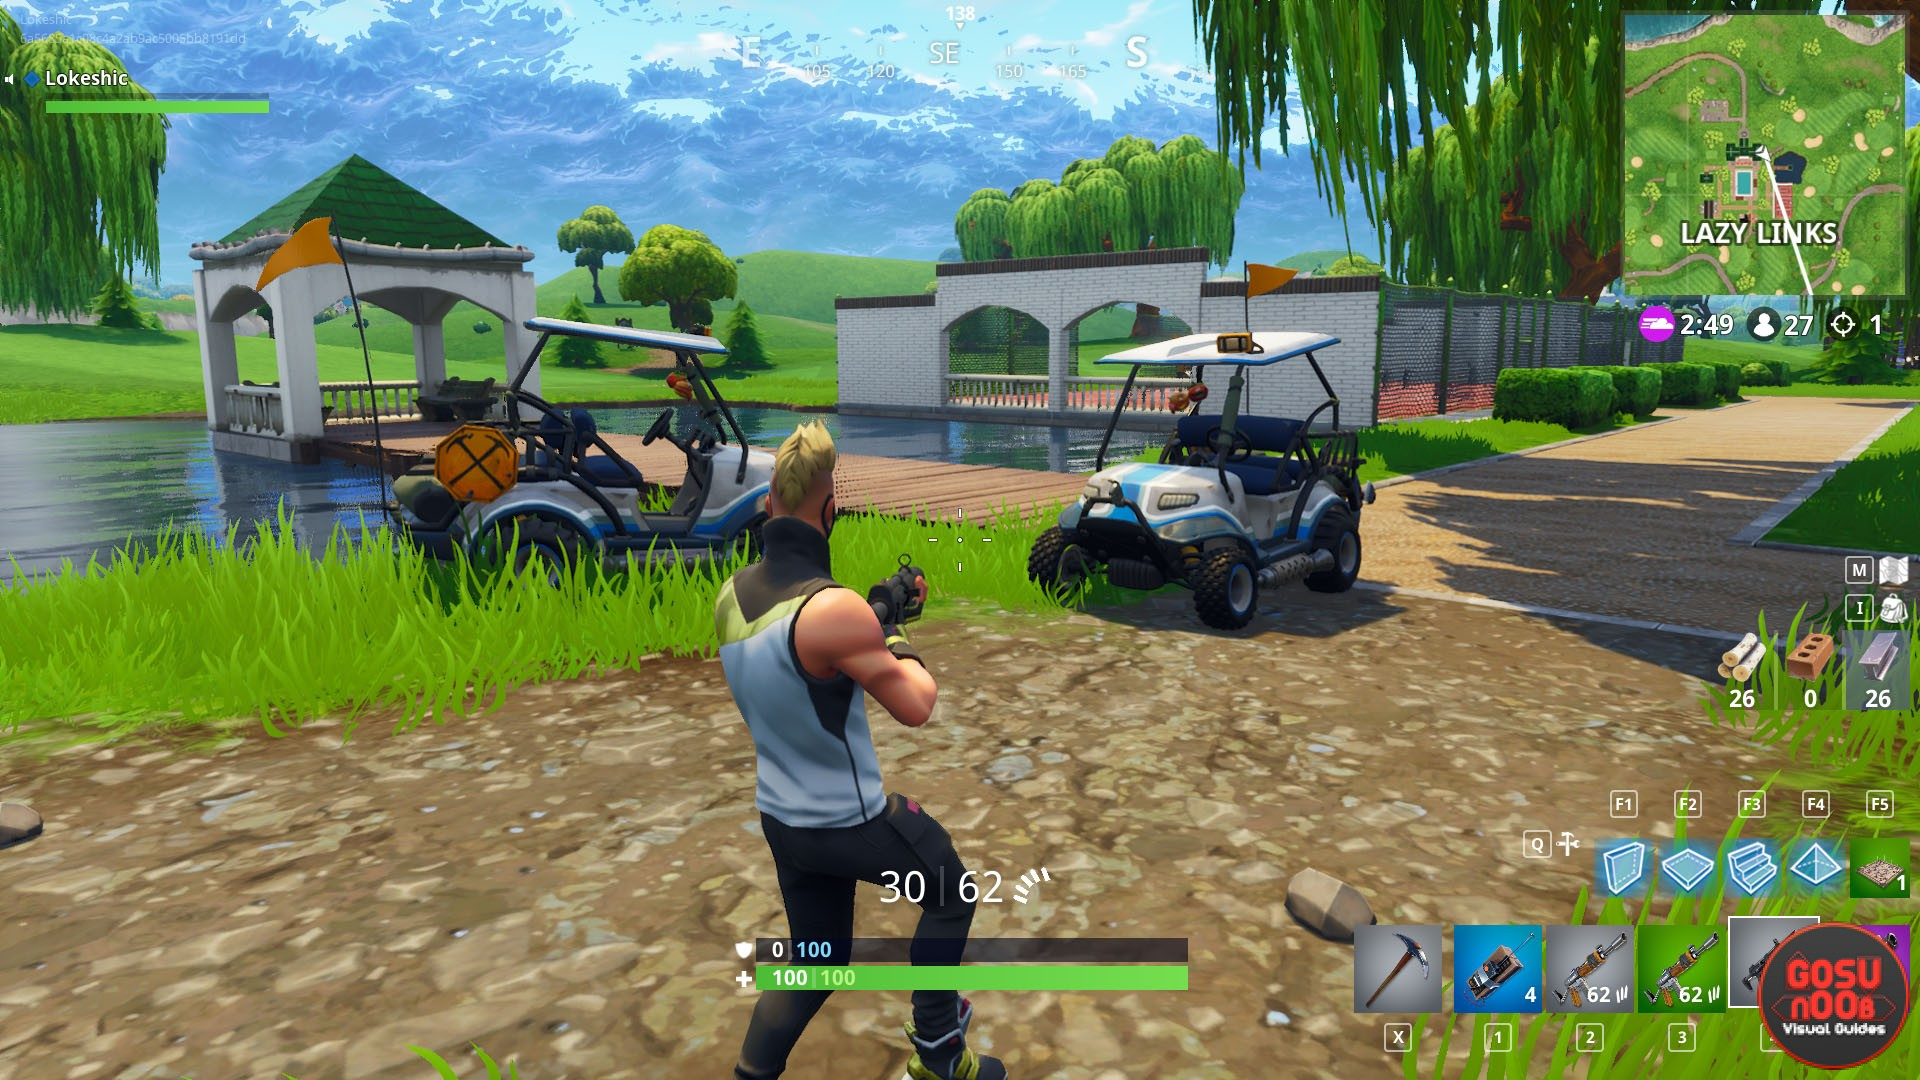 Fortnite BR ATK Golf Cart Locations - Where to find All ...